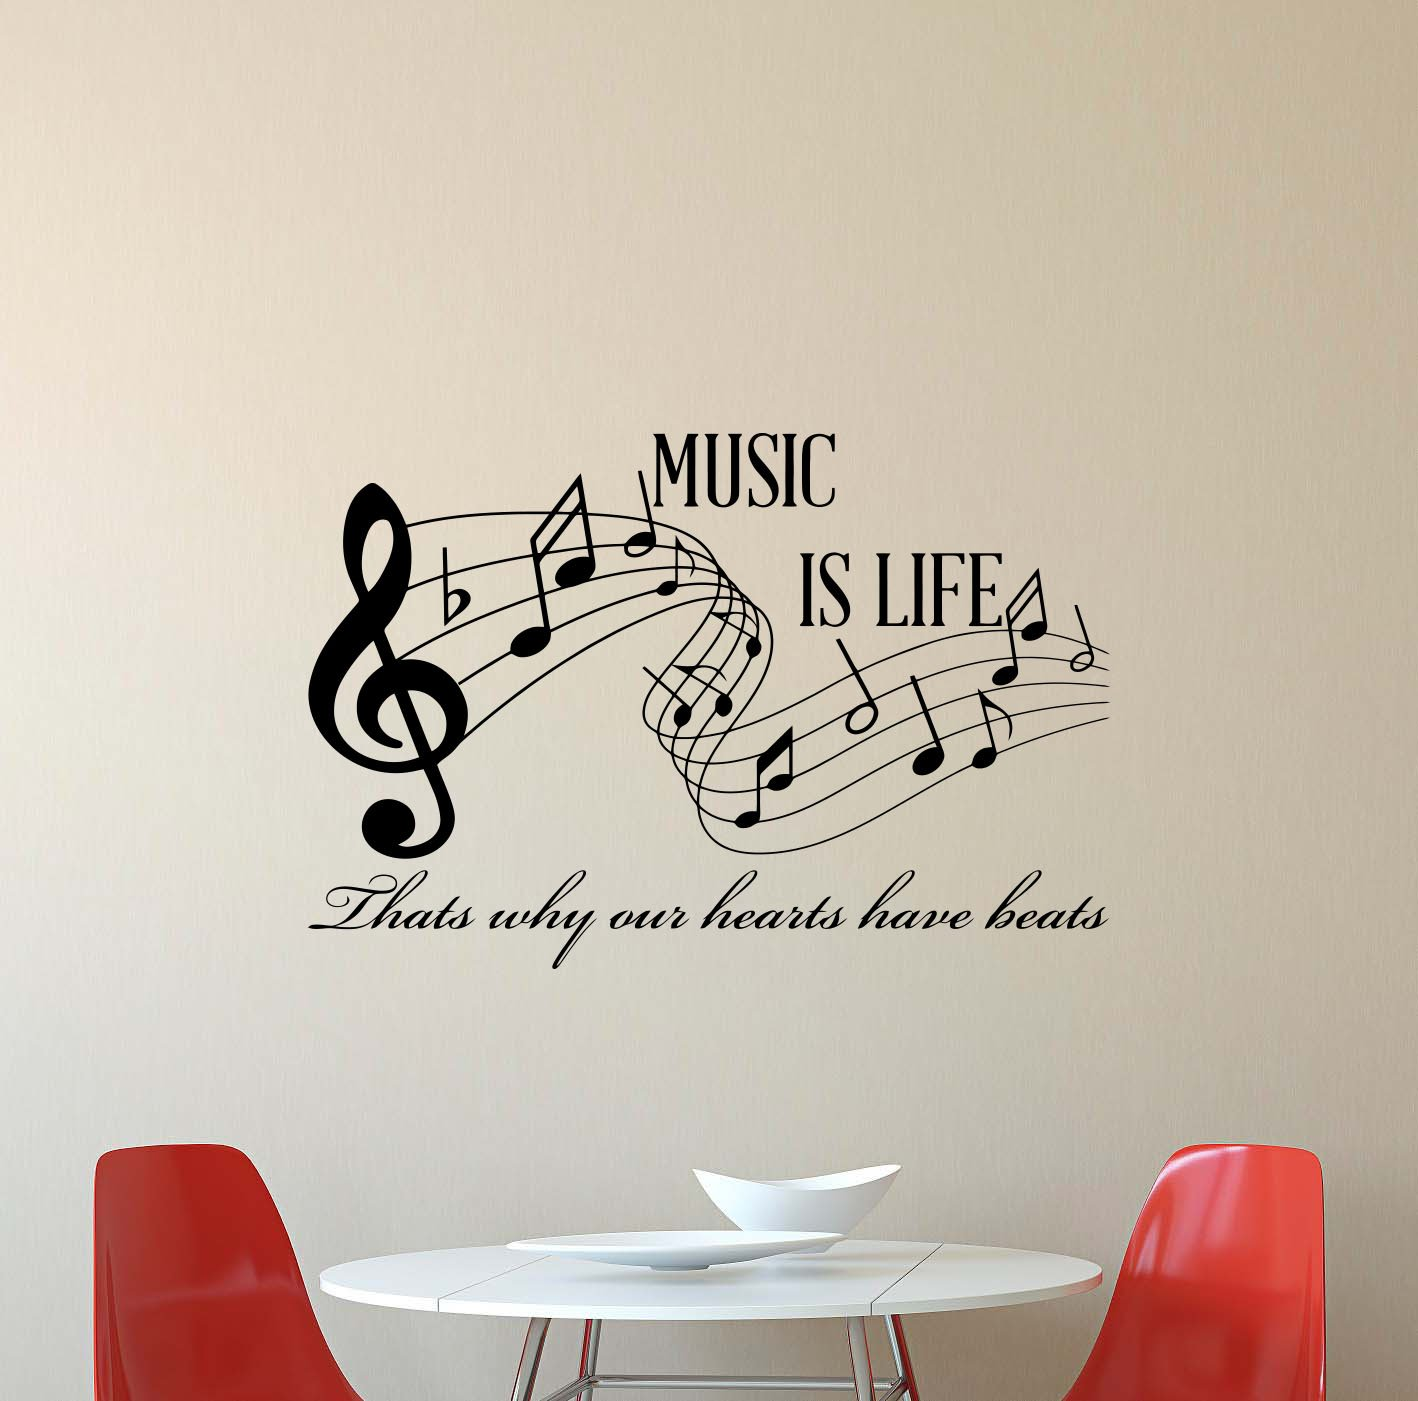 Music is life wall decal thats why our hearts have beats musical notes music lover gift quote lettering vinyl sticker boy girl teens kids home bedroom